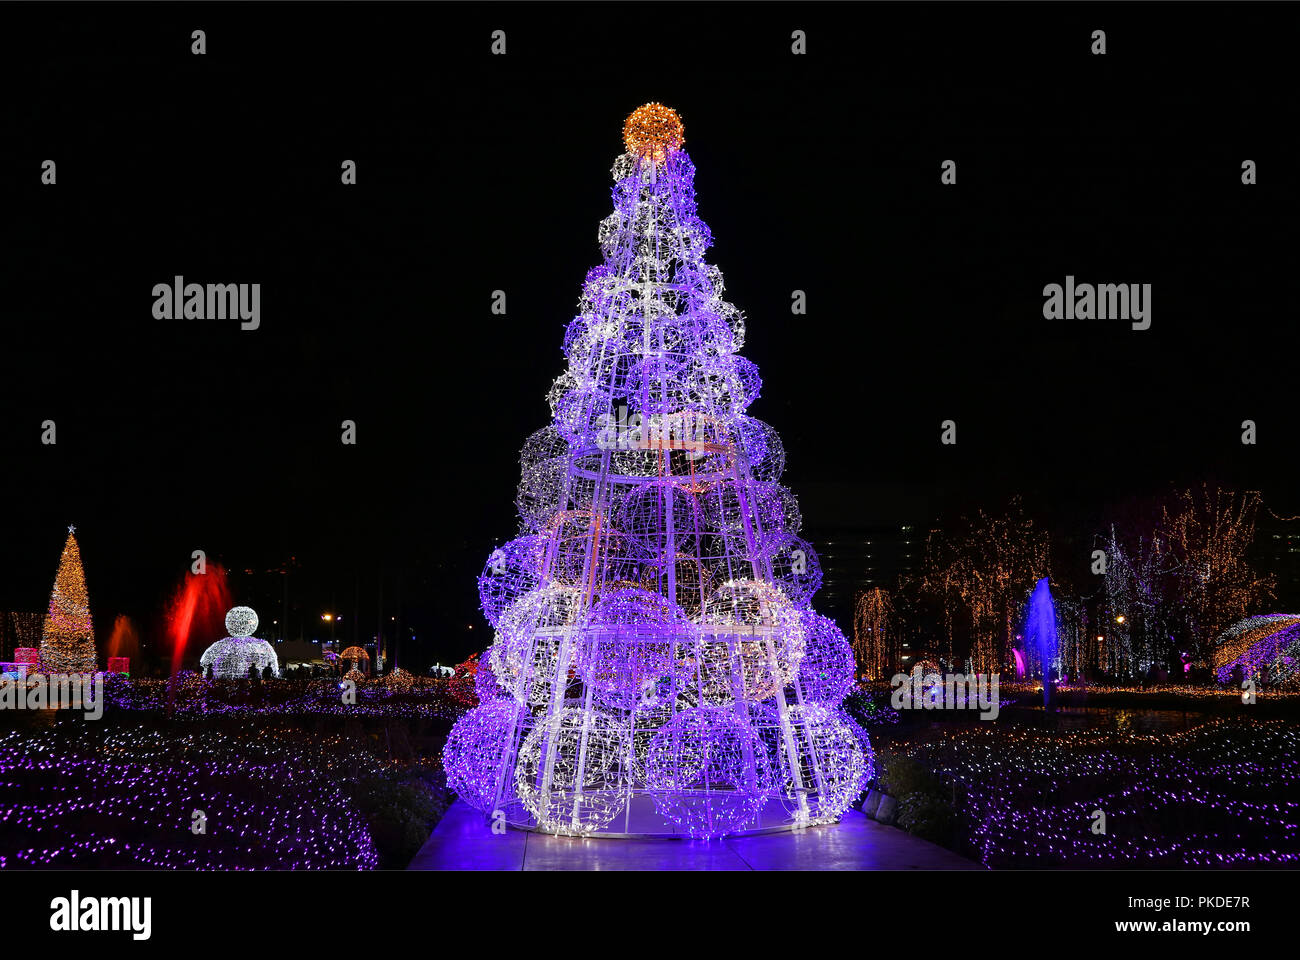 outdoor illuminated christmas decorations glittering against night sky